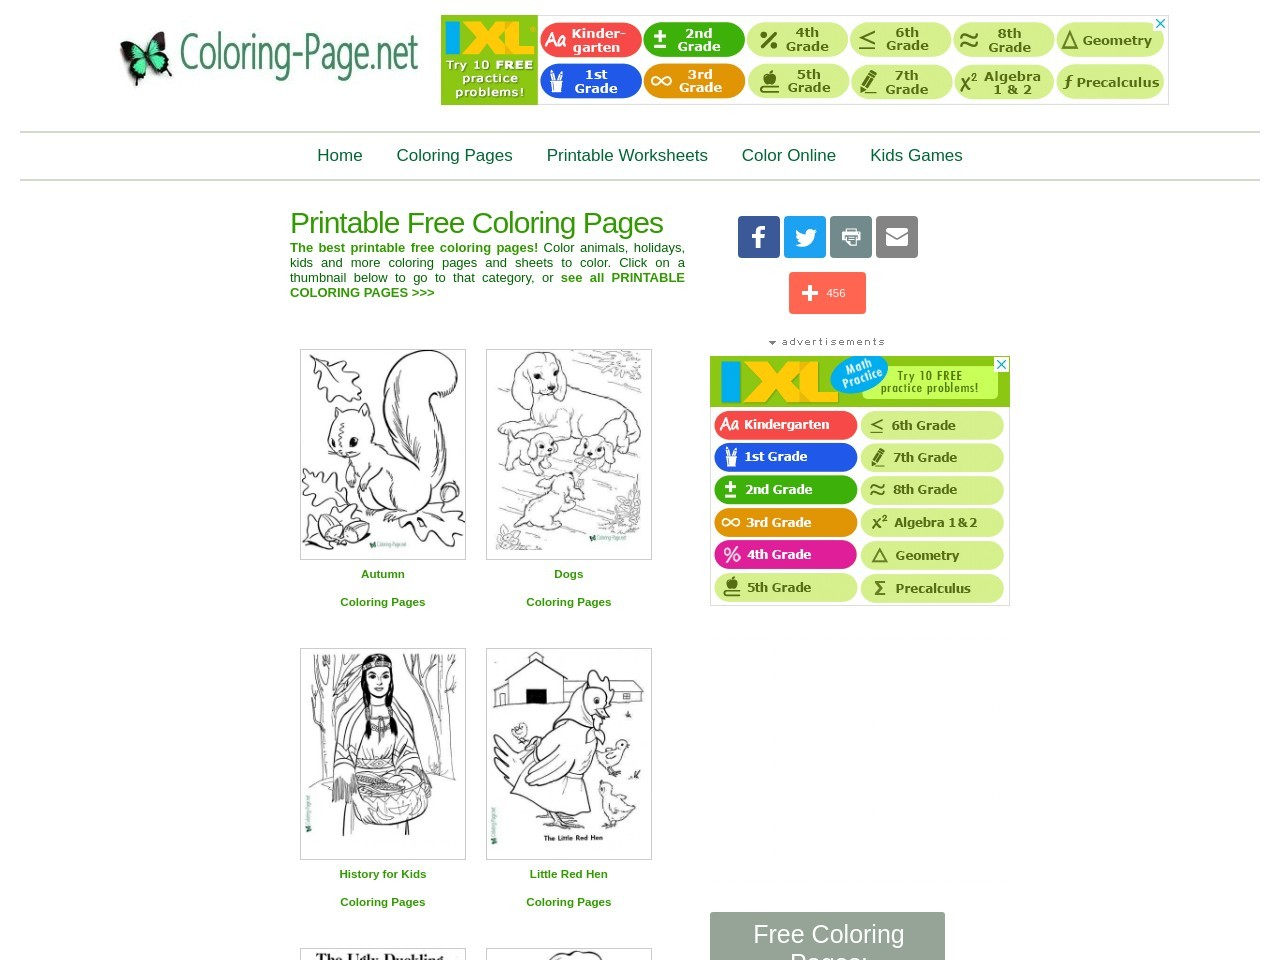 Free Coloring Pages, Printable Kids Worksheets at Coloring-Page.net